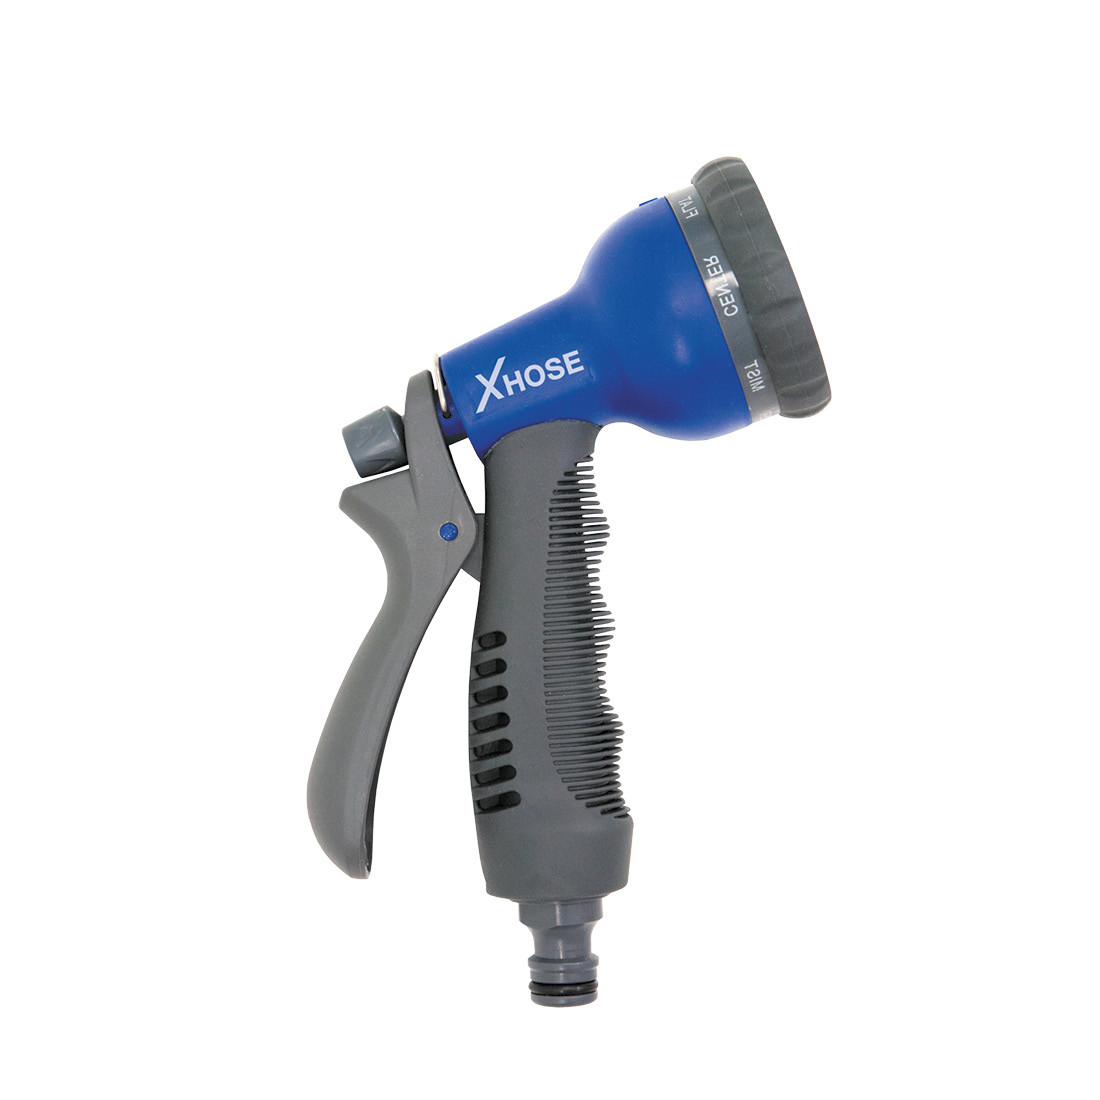 An image of XHose 8 Speed Spray Nozzle